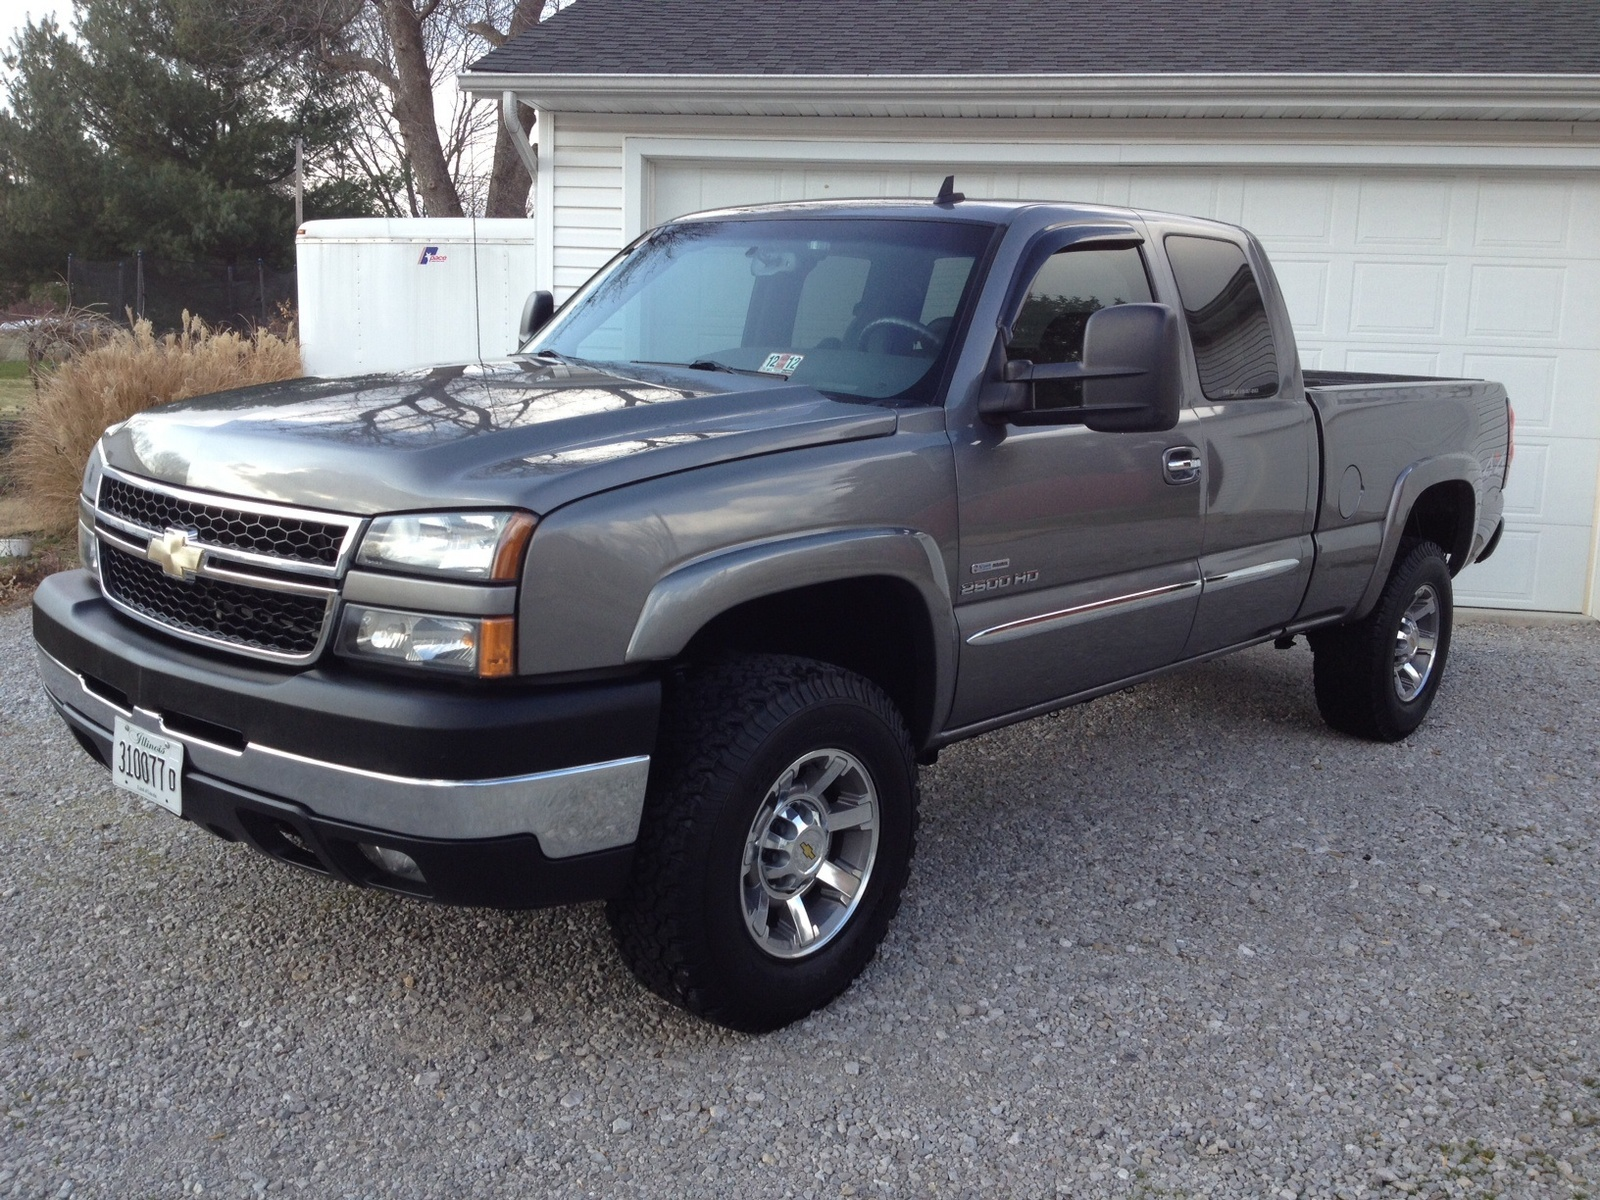 2003 chevrolet silverado 2500 photos informations articles. Black Bedroom Furniture Sets. Home Design Ideas